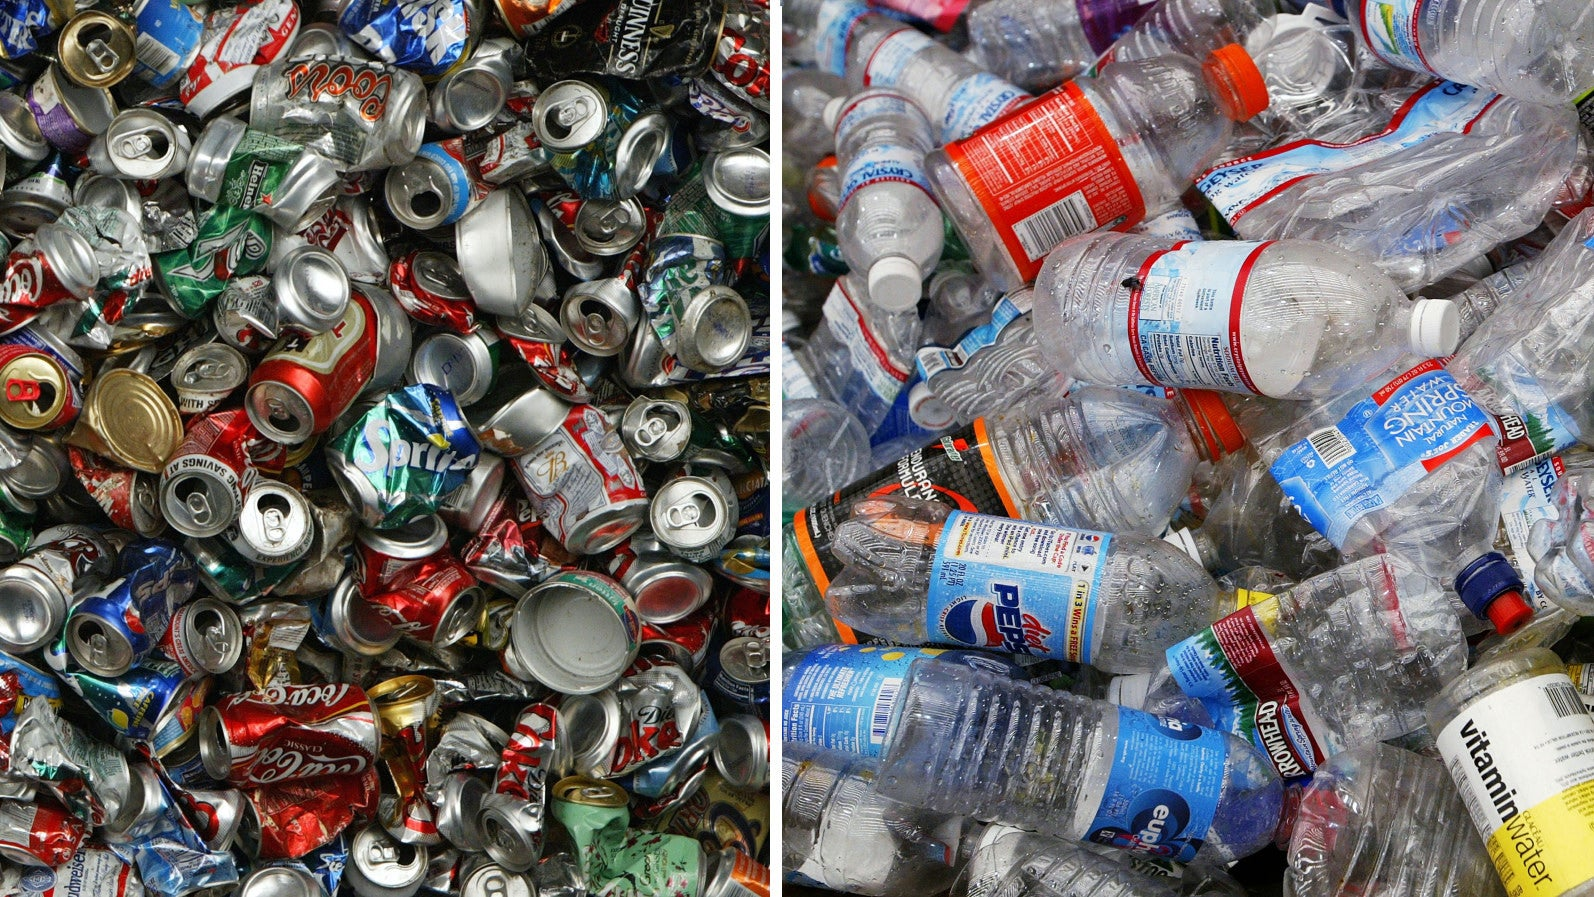 Are Cans Or Plastic Bottles Worse For The Environment?